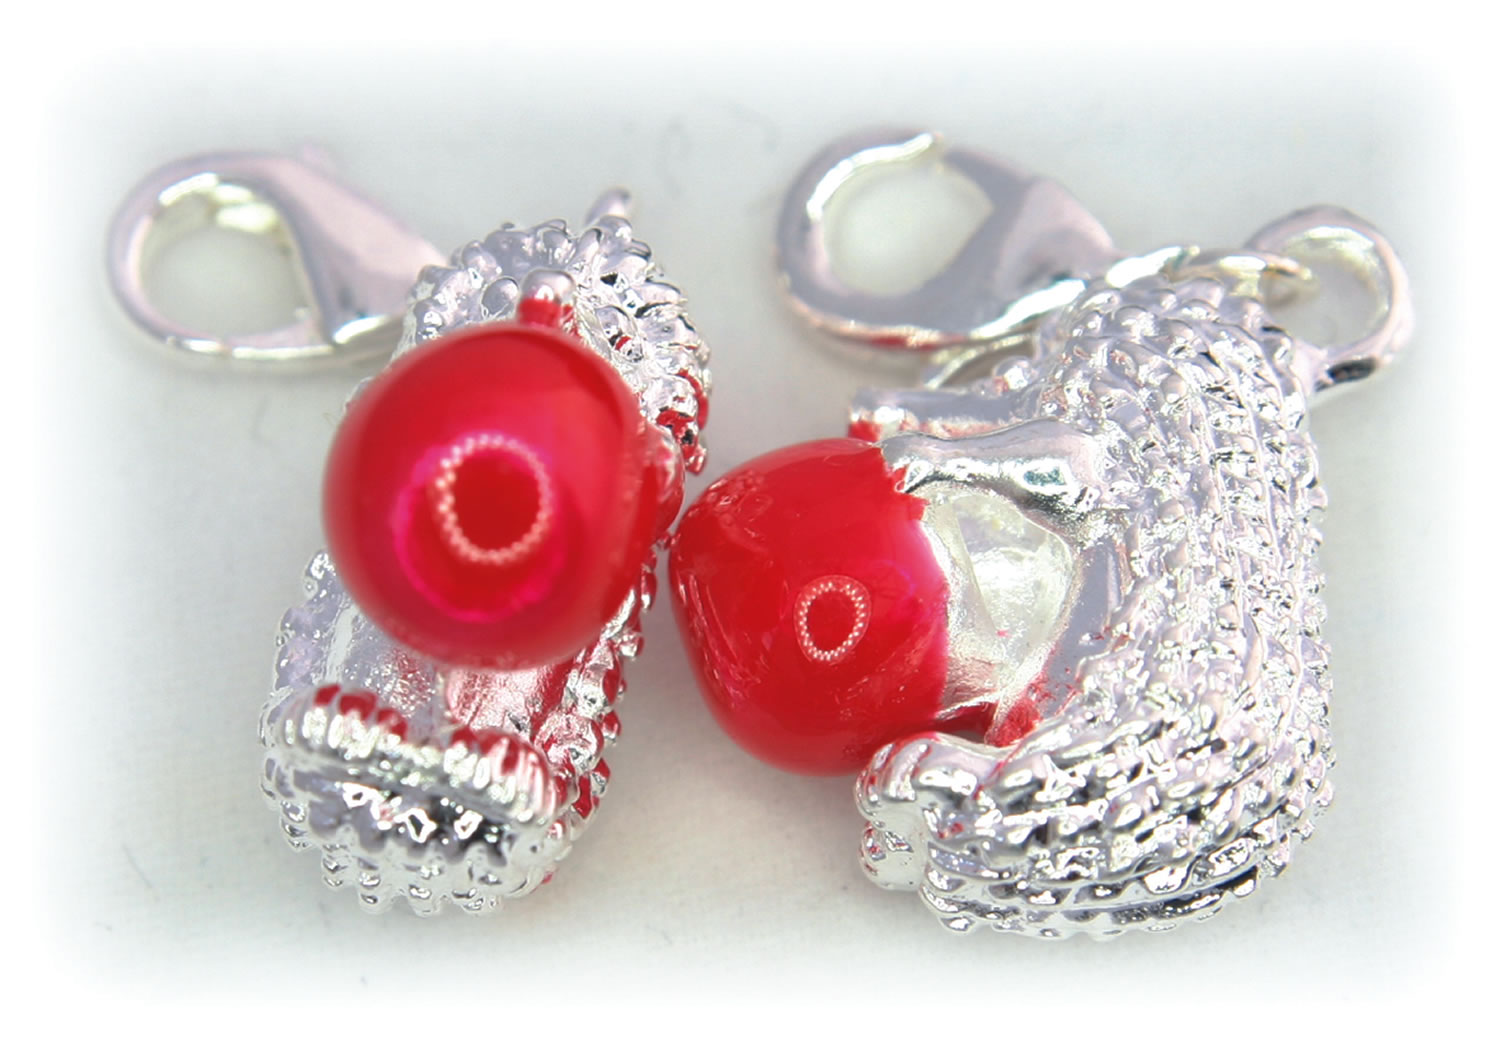 Example of light cube and rign light photograph of jewellery